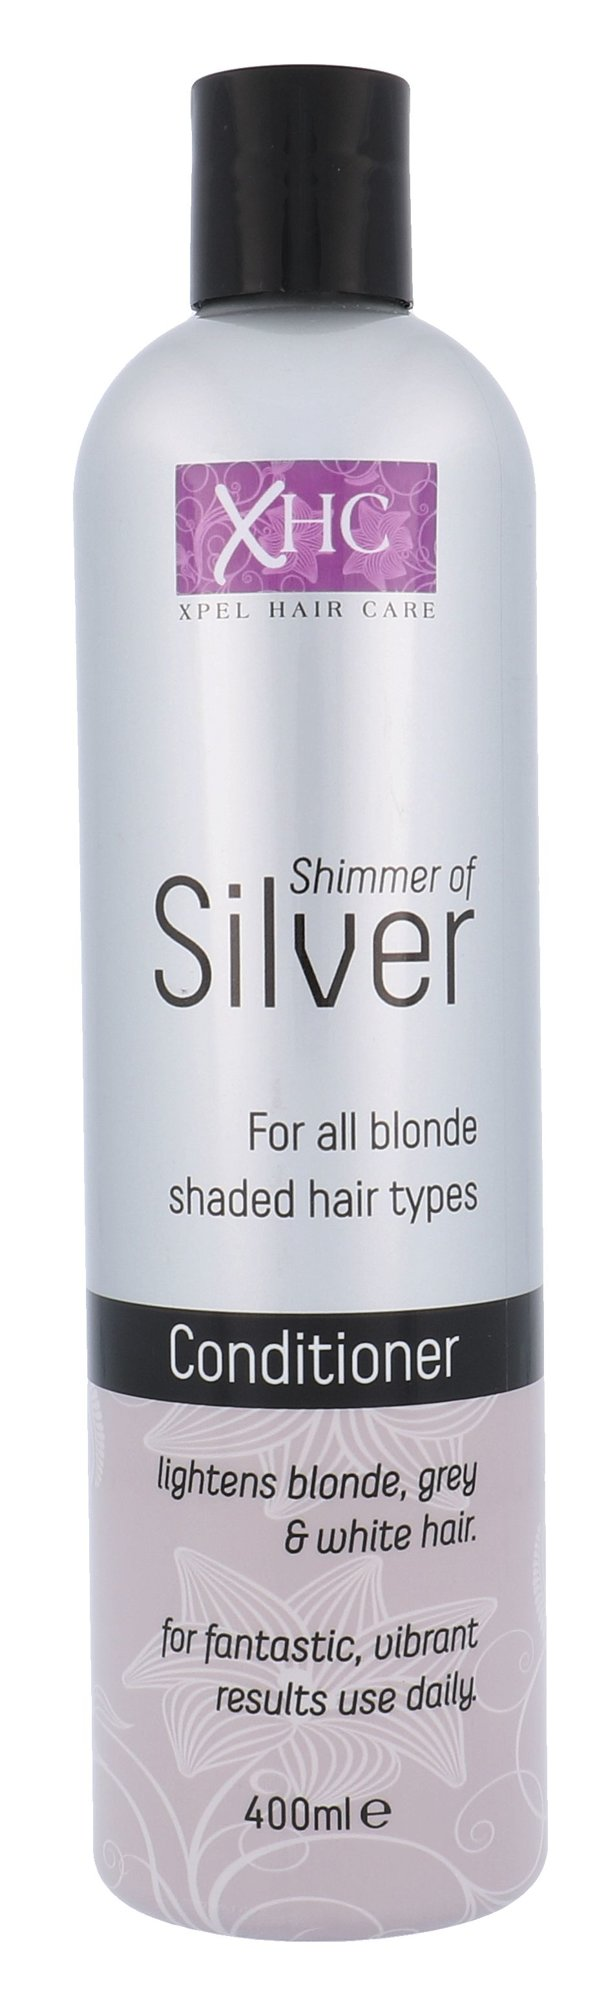 Xpel Shimmer Of Silver Cosmetic 400ml